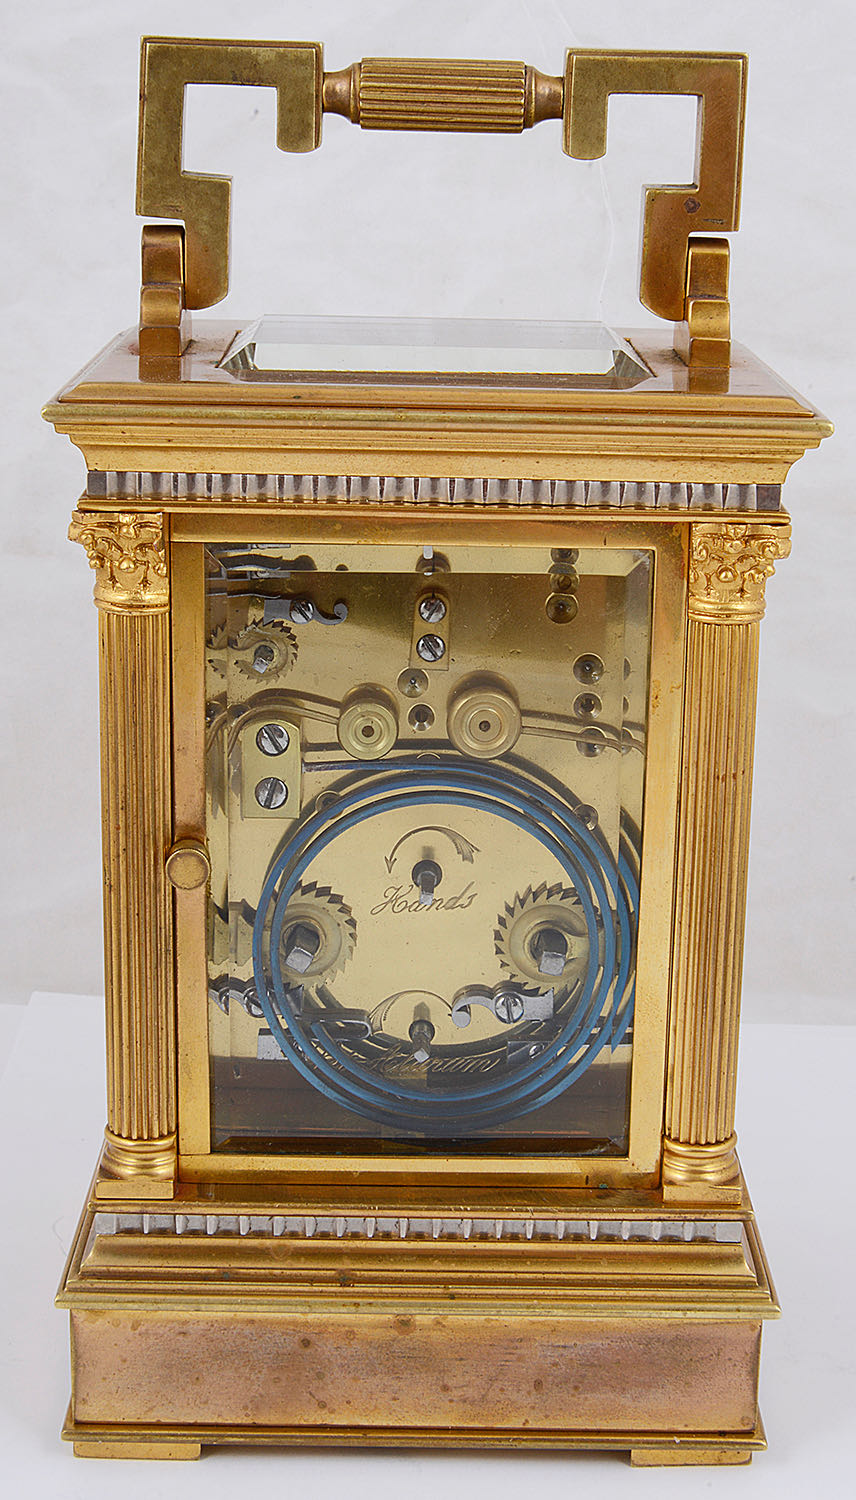 Lot 25 - An early 20th century French large gilt brass four pane carriage clock